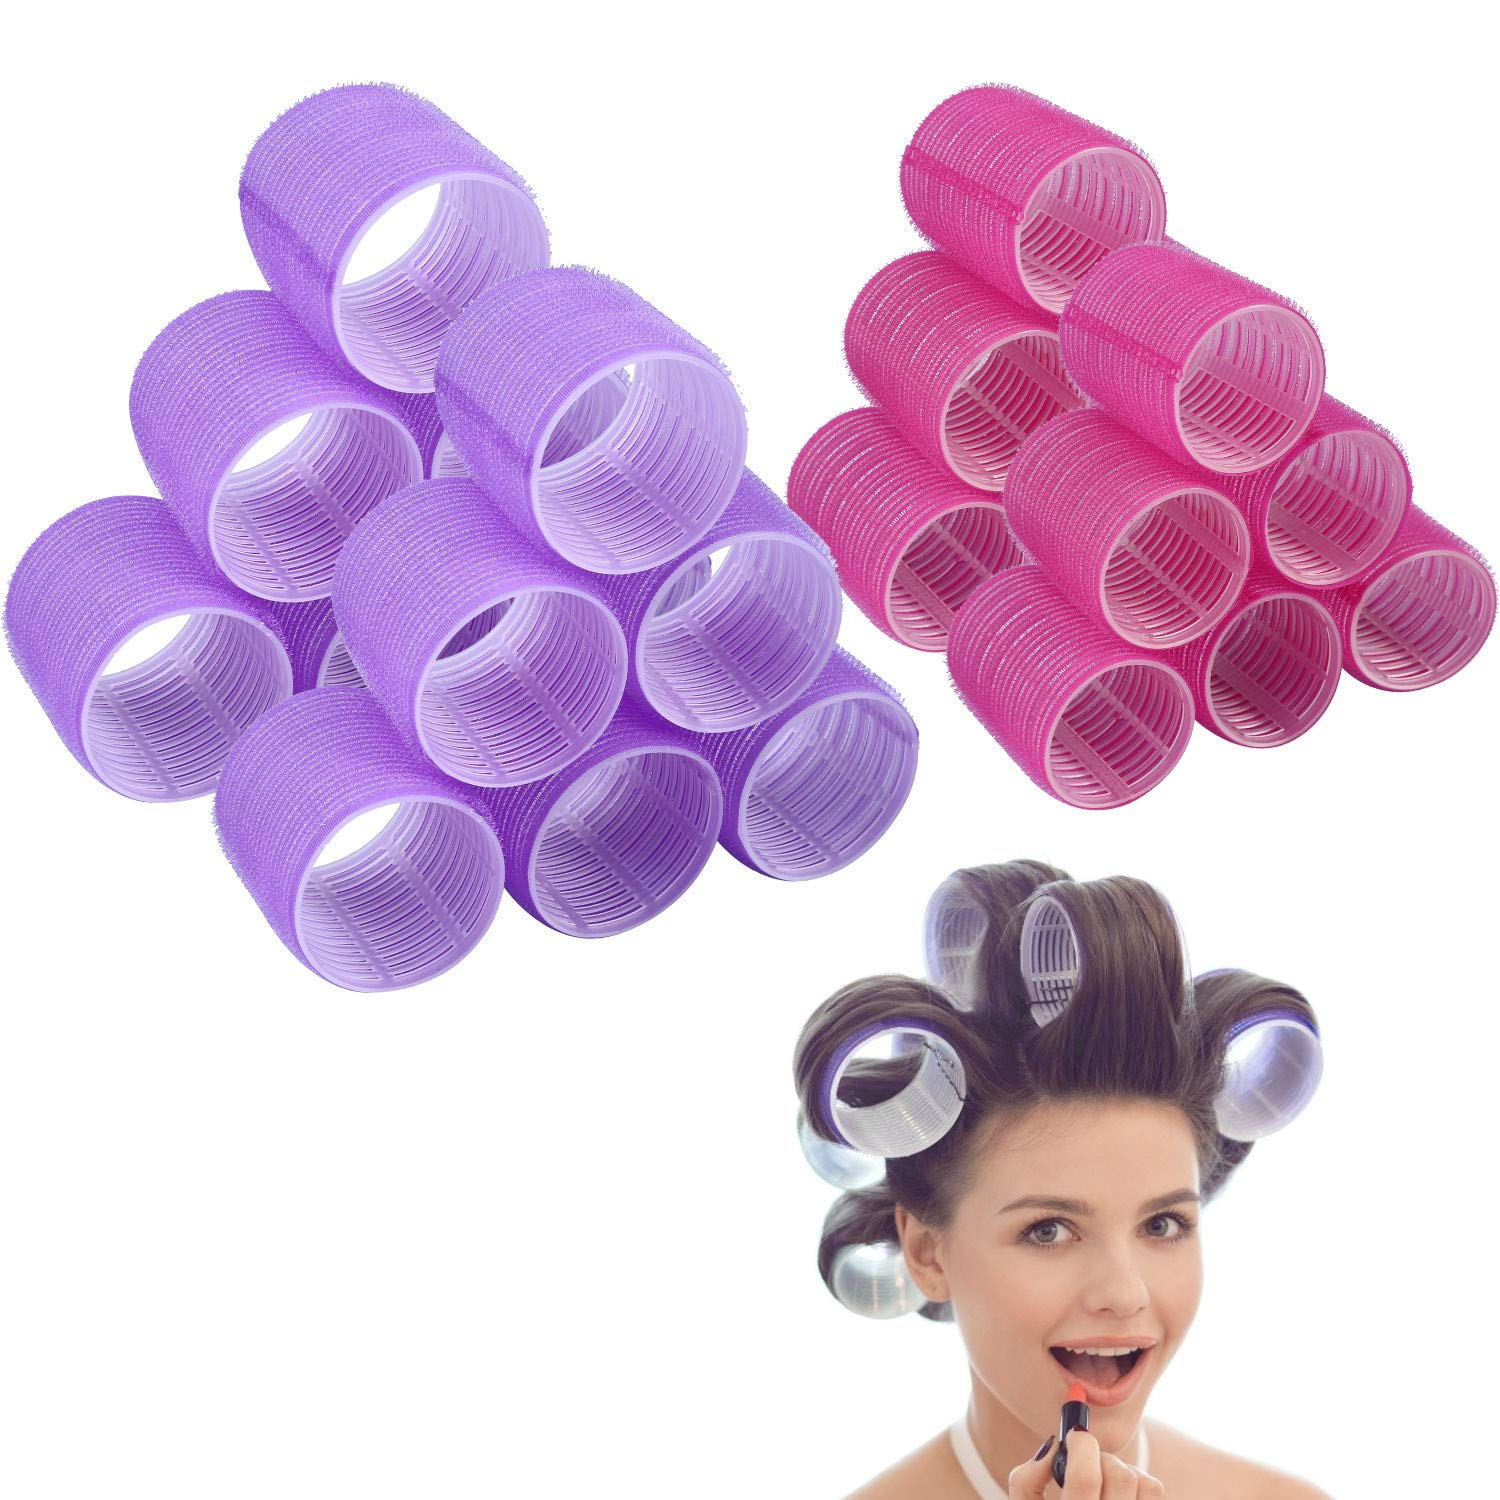 Jumbo Size Hair Roller sets, Self Grip, Salon Hair Dressing Curlers, Hair Curlers, 2 size 24 packs (12XJUMBO+12XLARGE) by Afanso